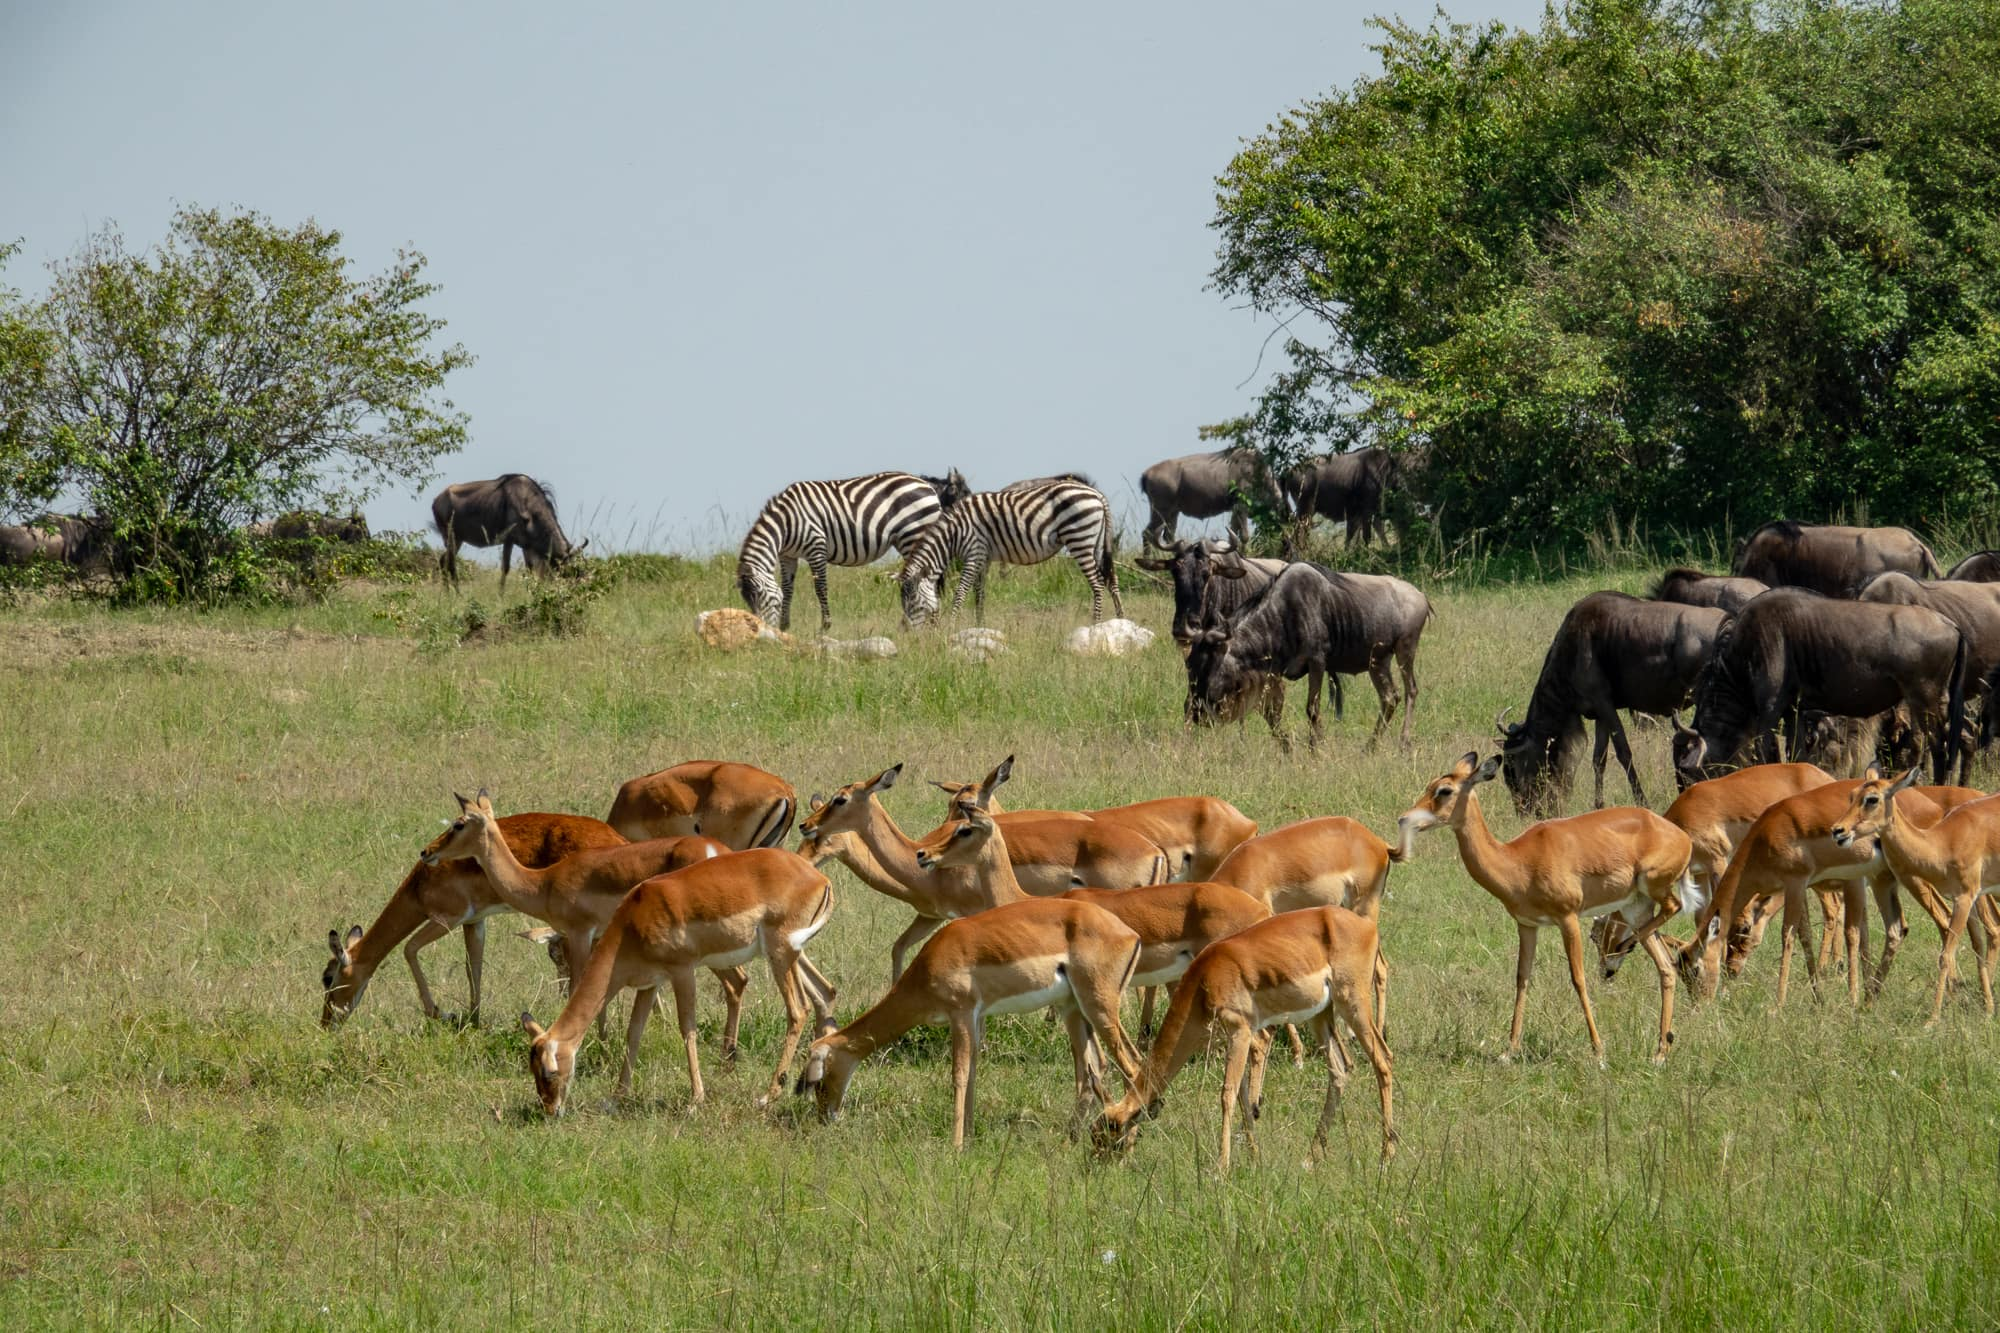 Antelope, wildebeest, zebra and warthogs, seen in the Wildebeest Migration in the Maasai Mara, Kenya